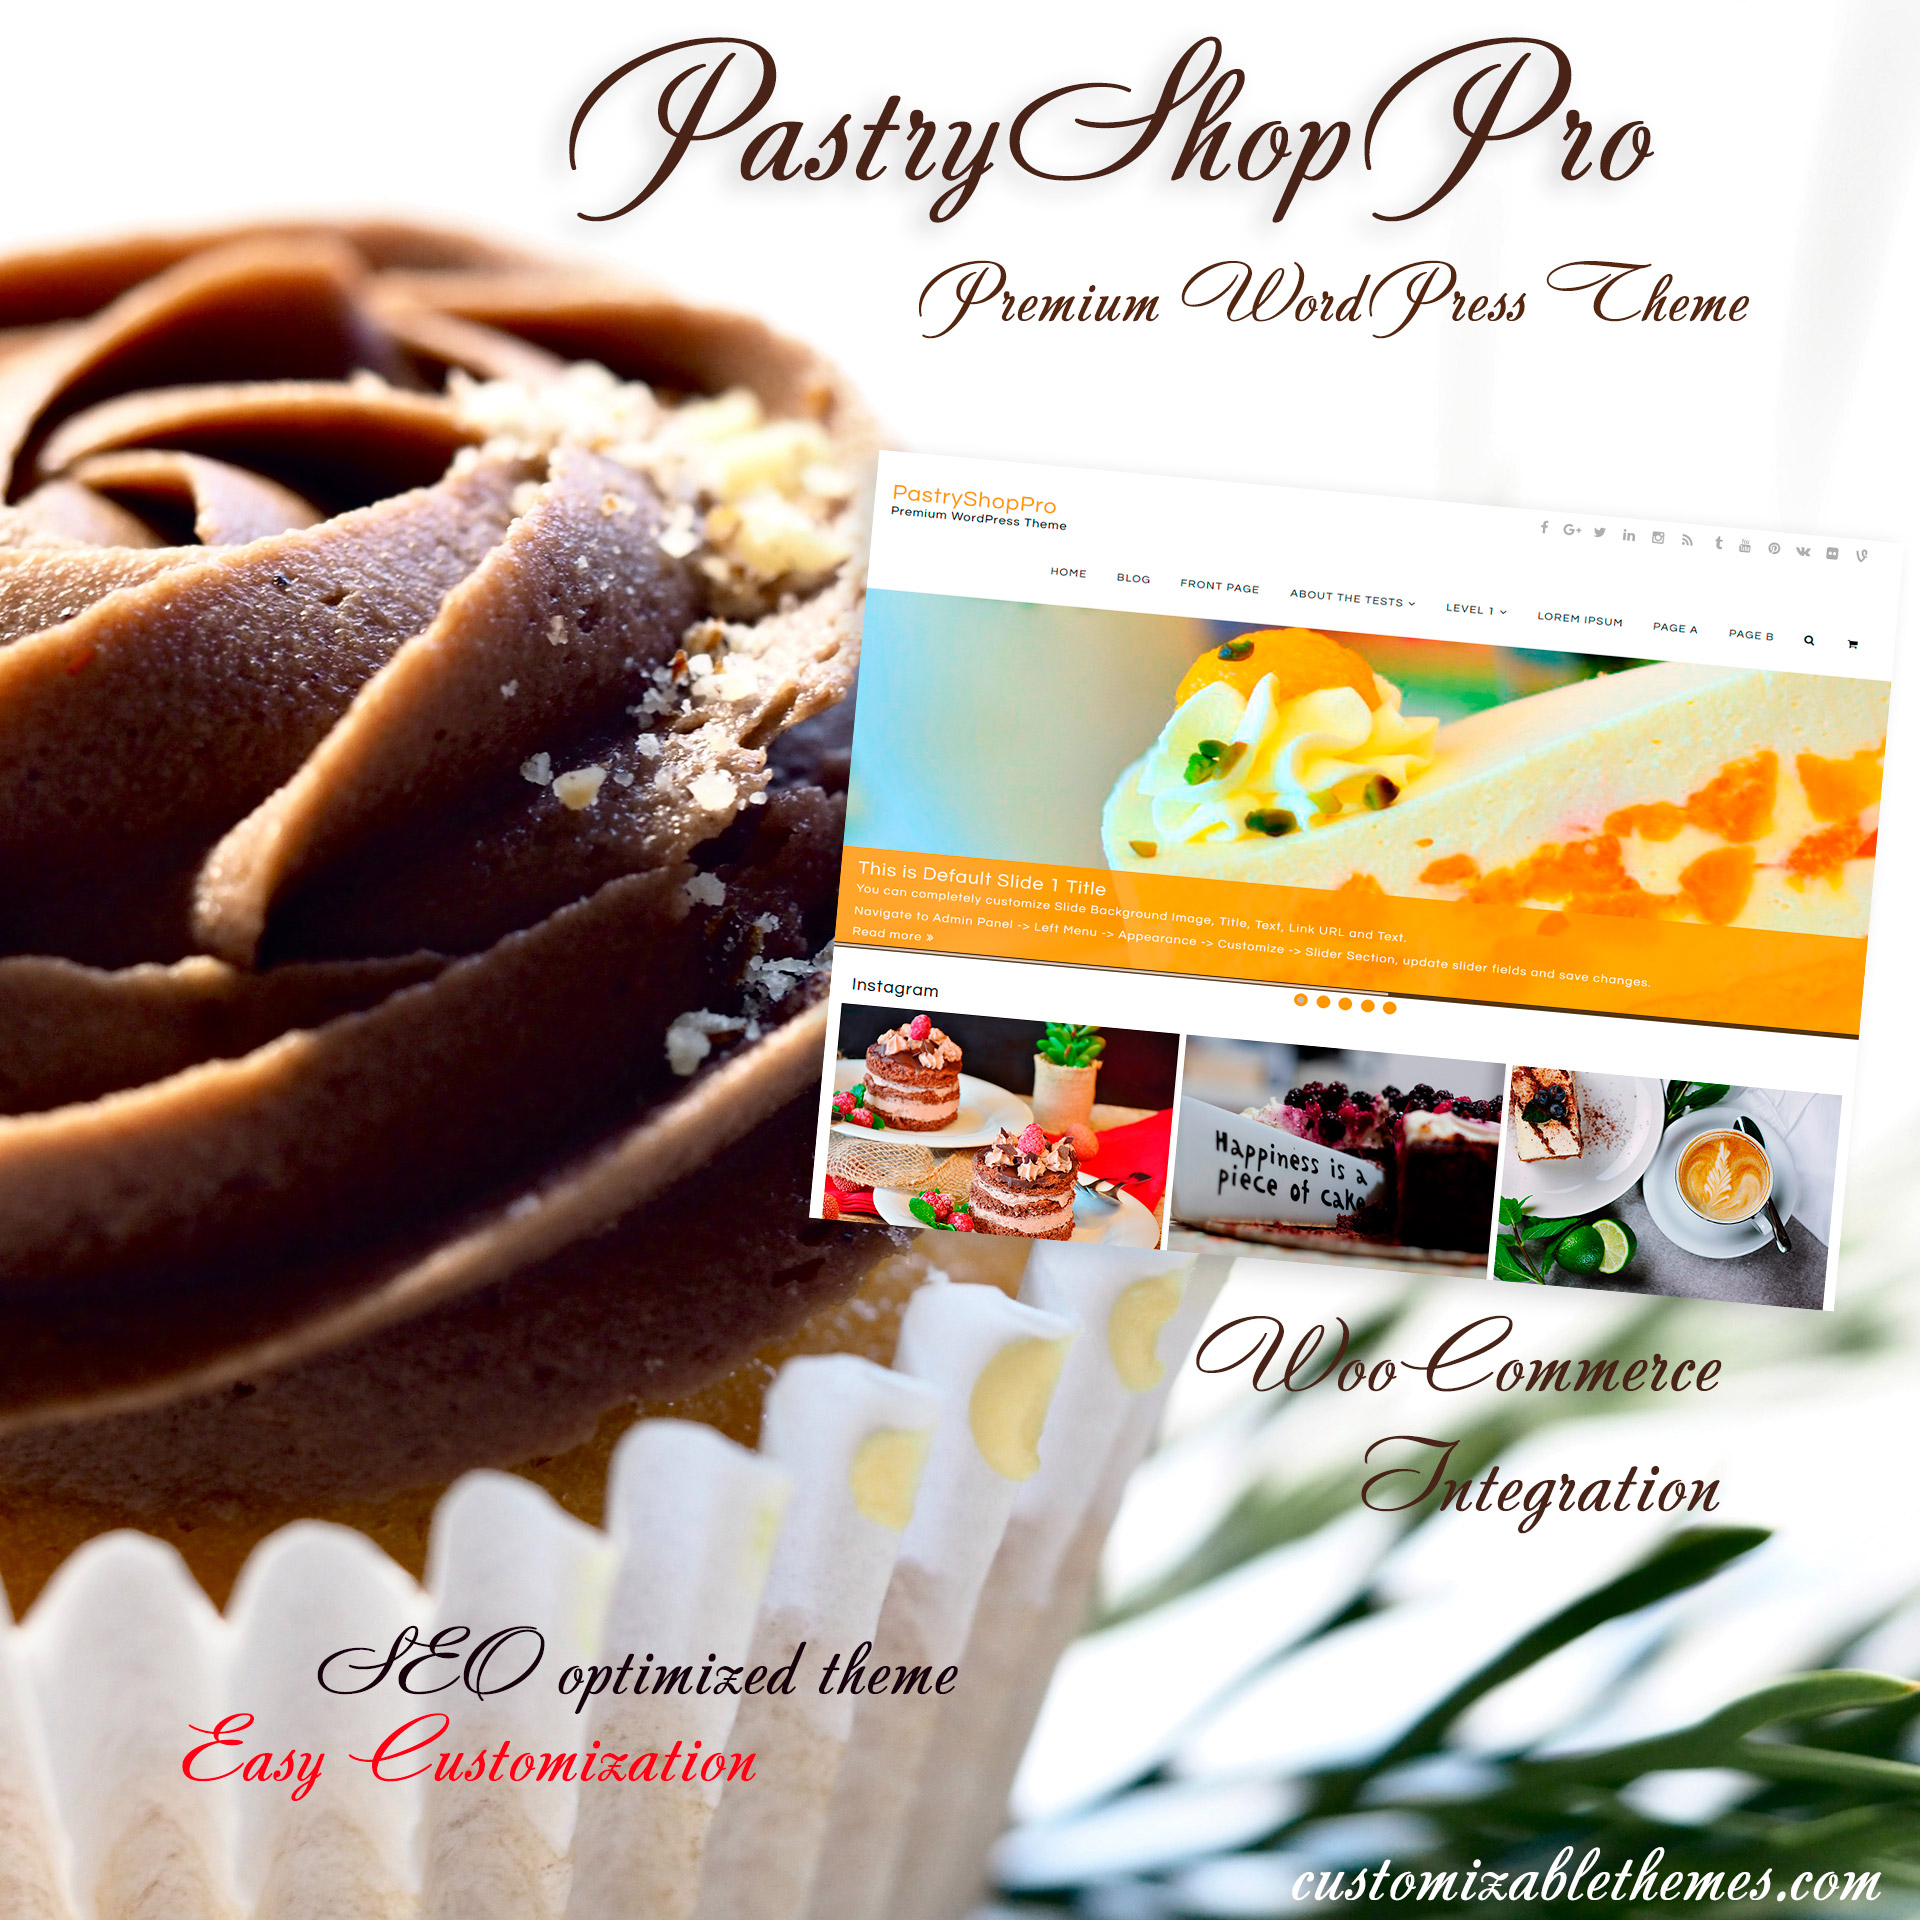 pastryshoppro-premium-wordpress-theme-mockup-customizablethemes-com